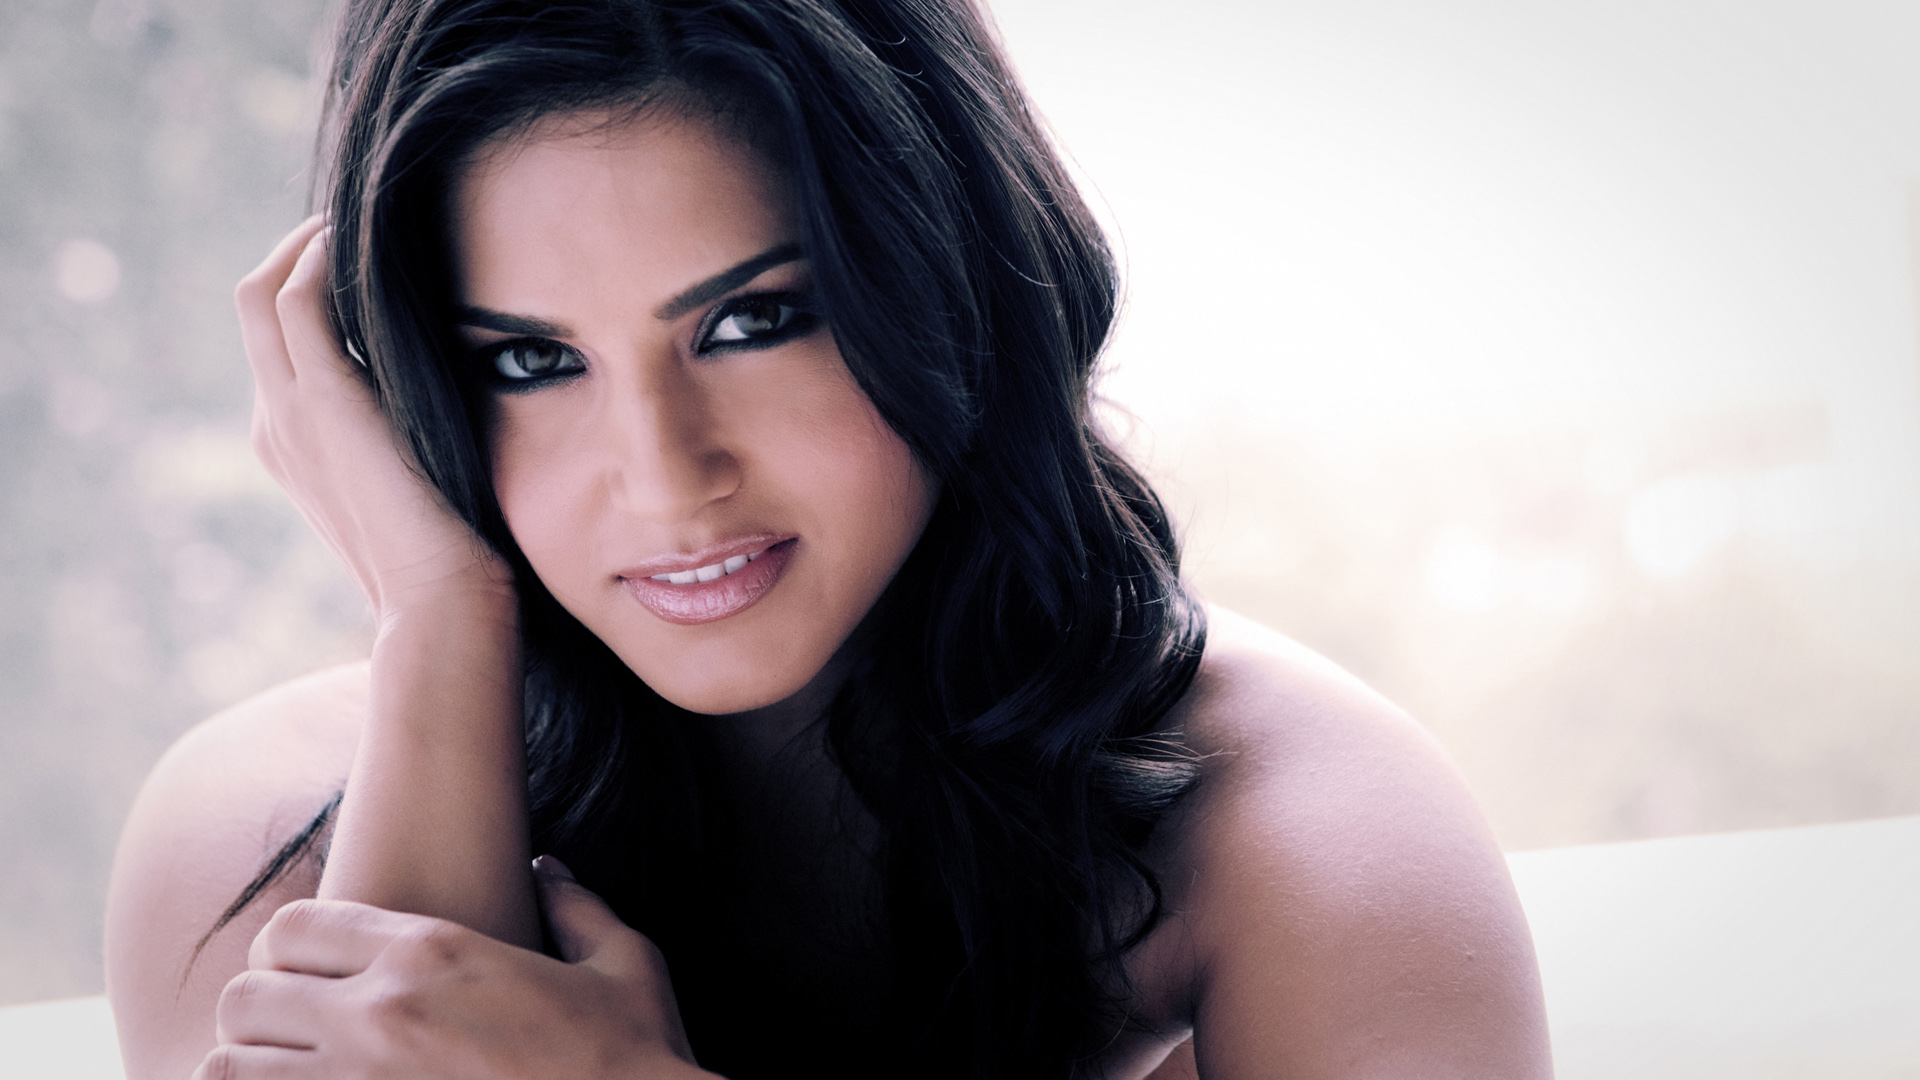 wallpaper.wiki-sunny-leone-wallpaper-hd-pic-wpd002623 | wallpaper.wiki